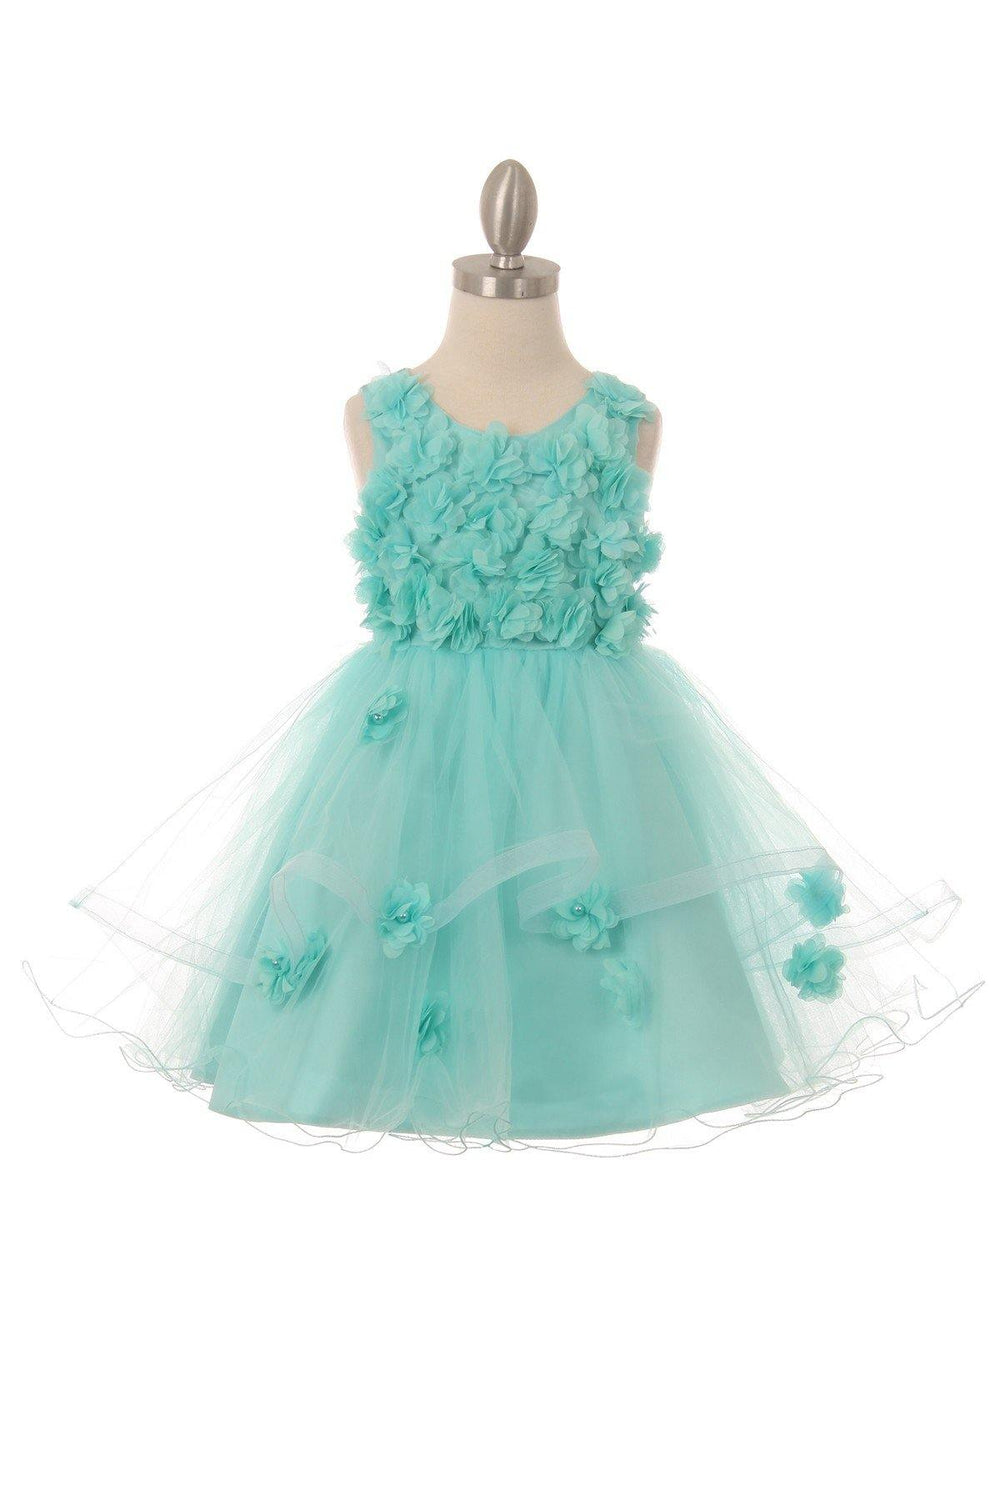 Sleeveless Embellished Short Party Flower Girls Dress - The Dress Outlet Aqua